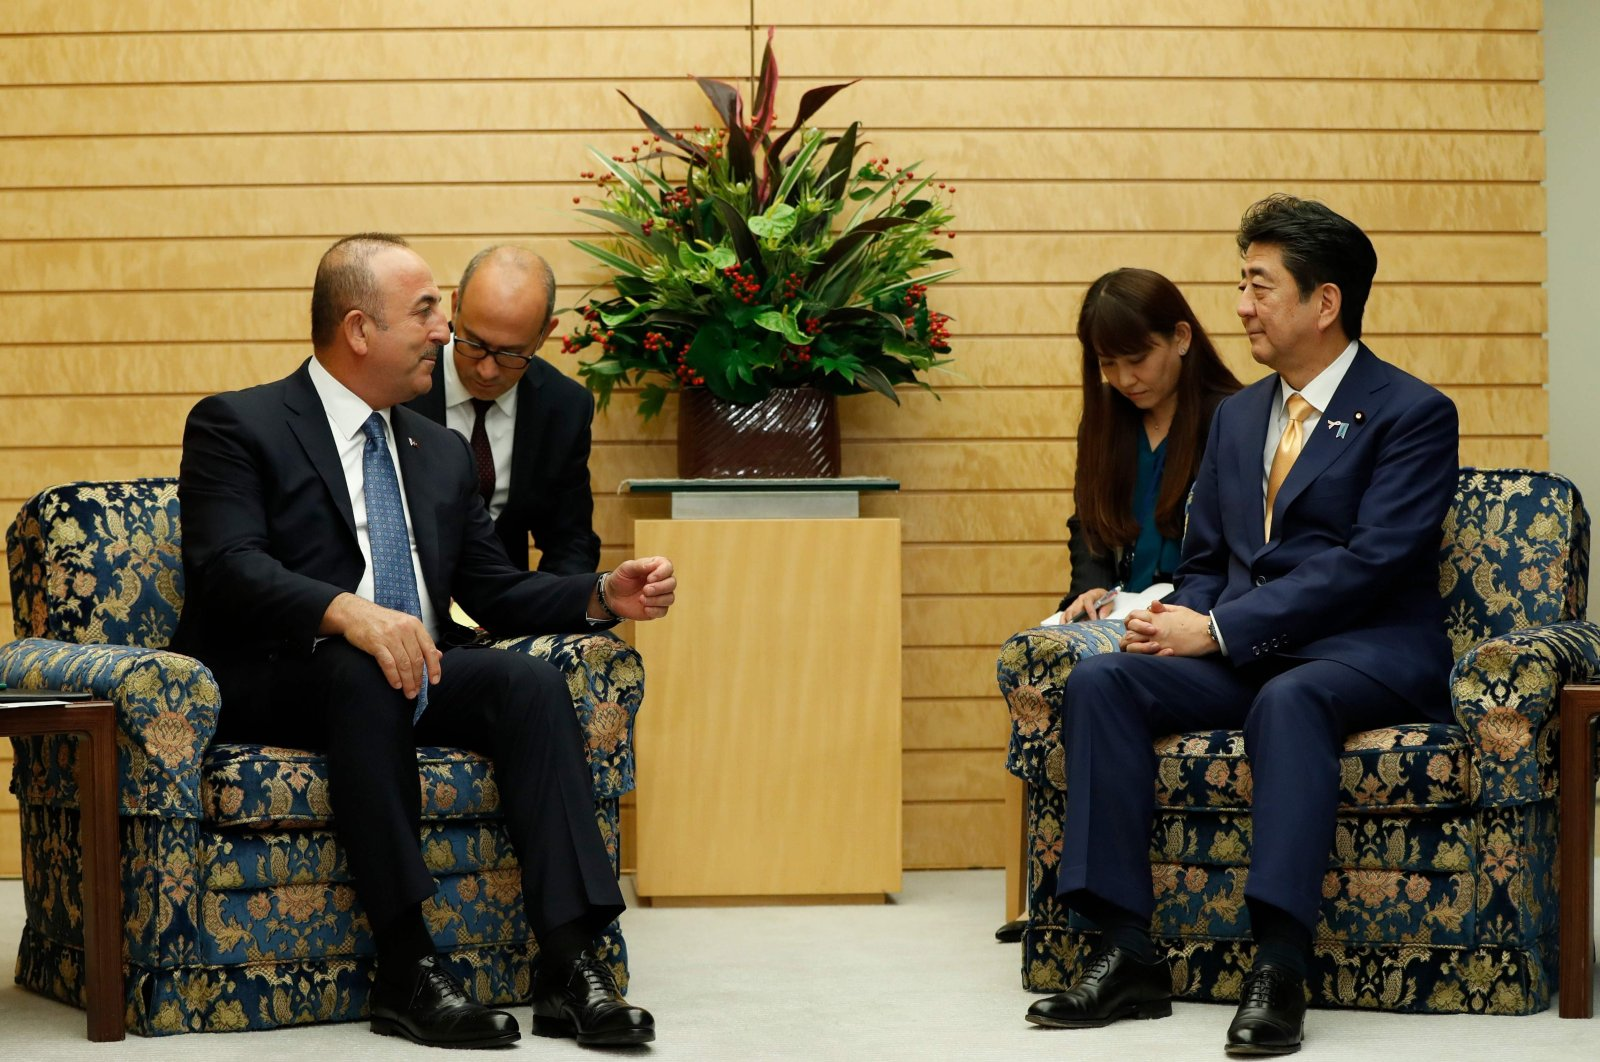 TurkishMinister of Foreign Affairs Mevlüt Çavuşoğlu (L), Japanese Prime Minister Shinzo Abe during a meeting in Japan, November 6, 2018. (AFP Photo)